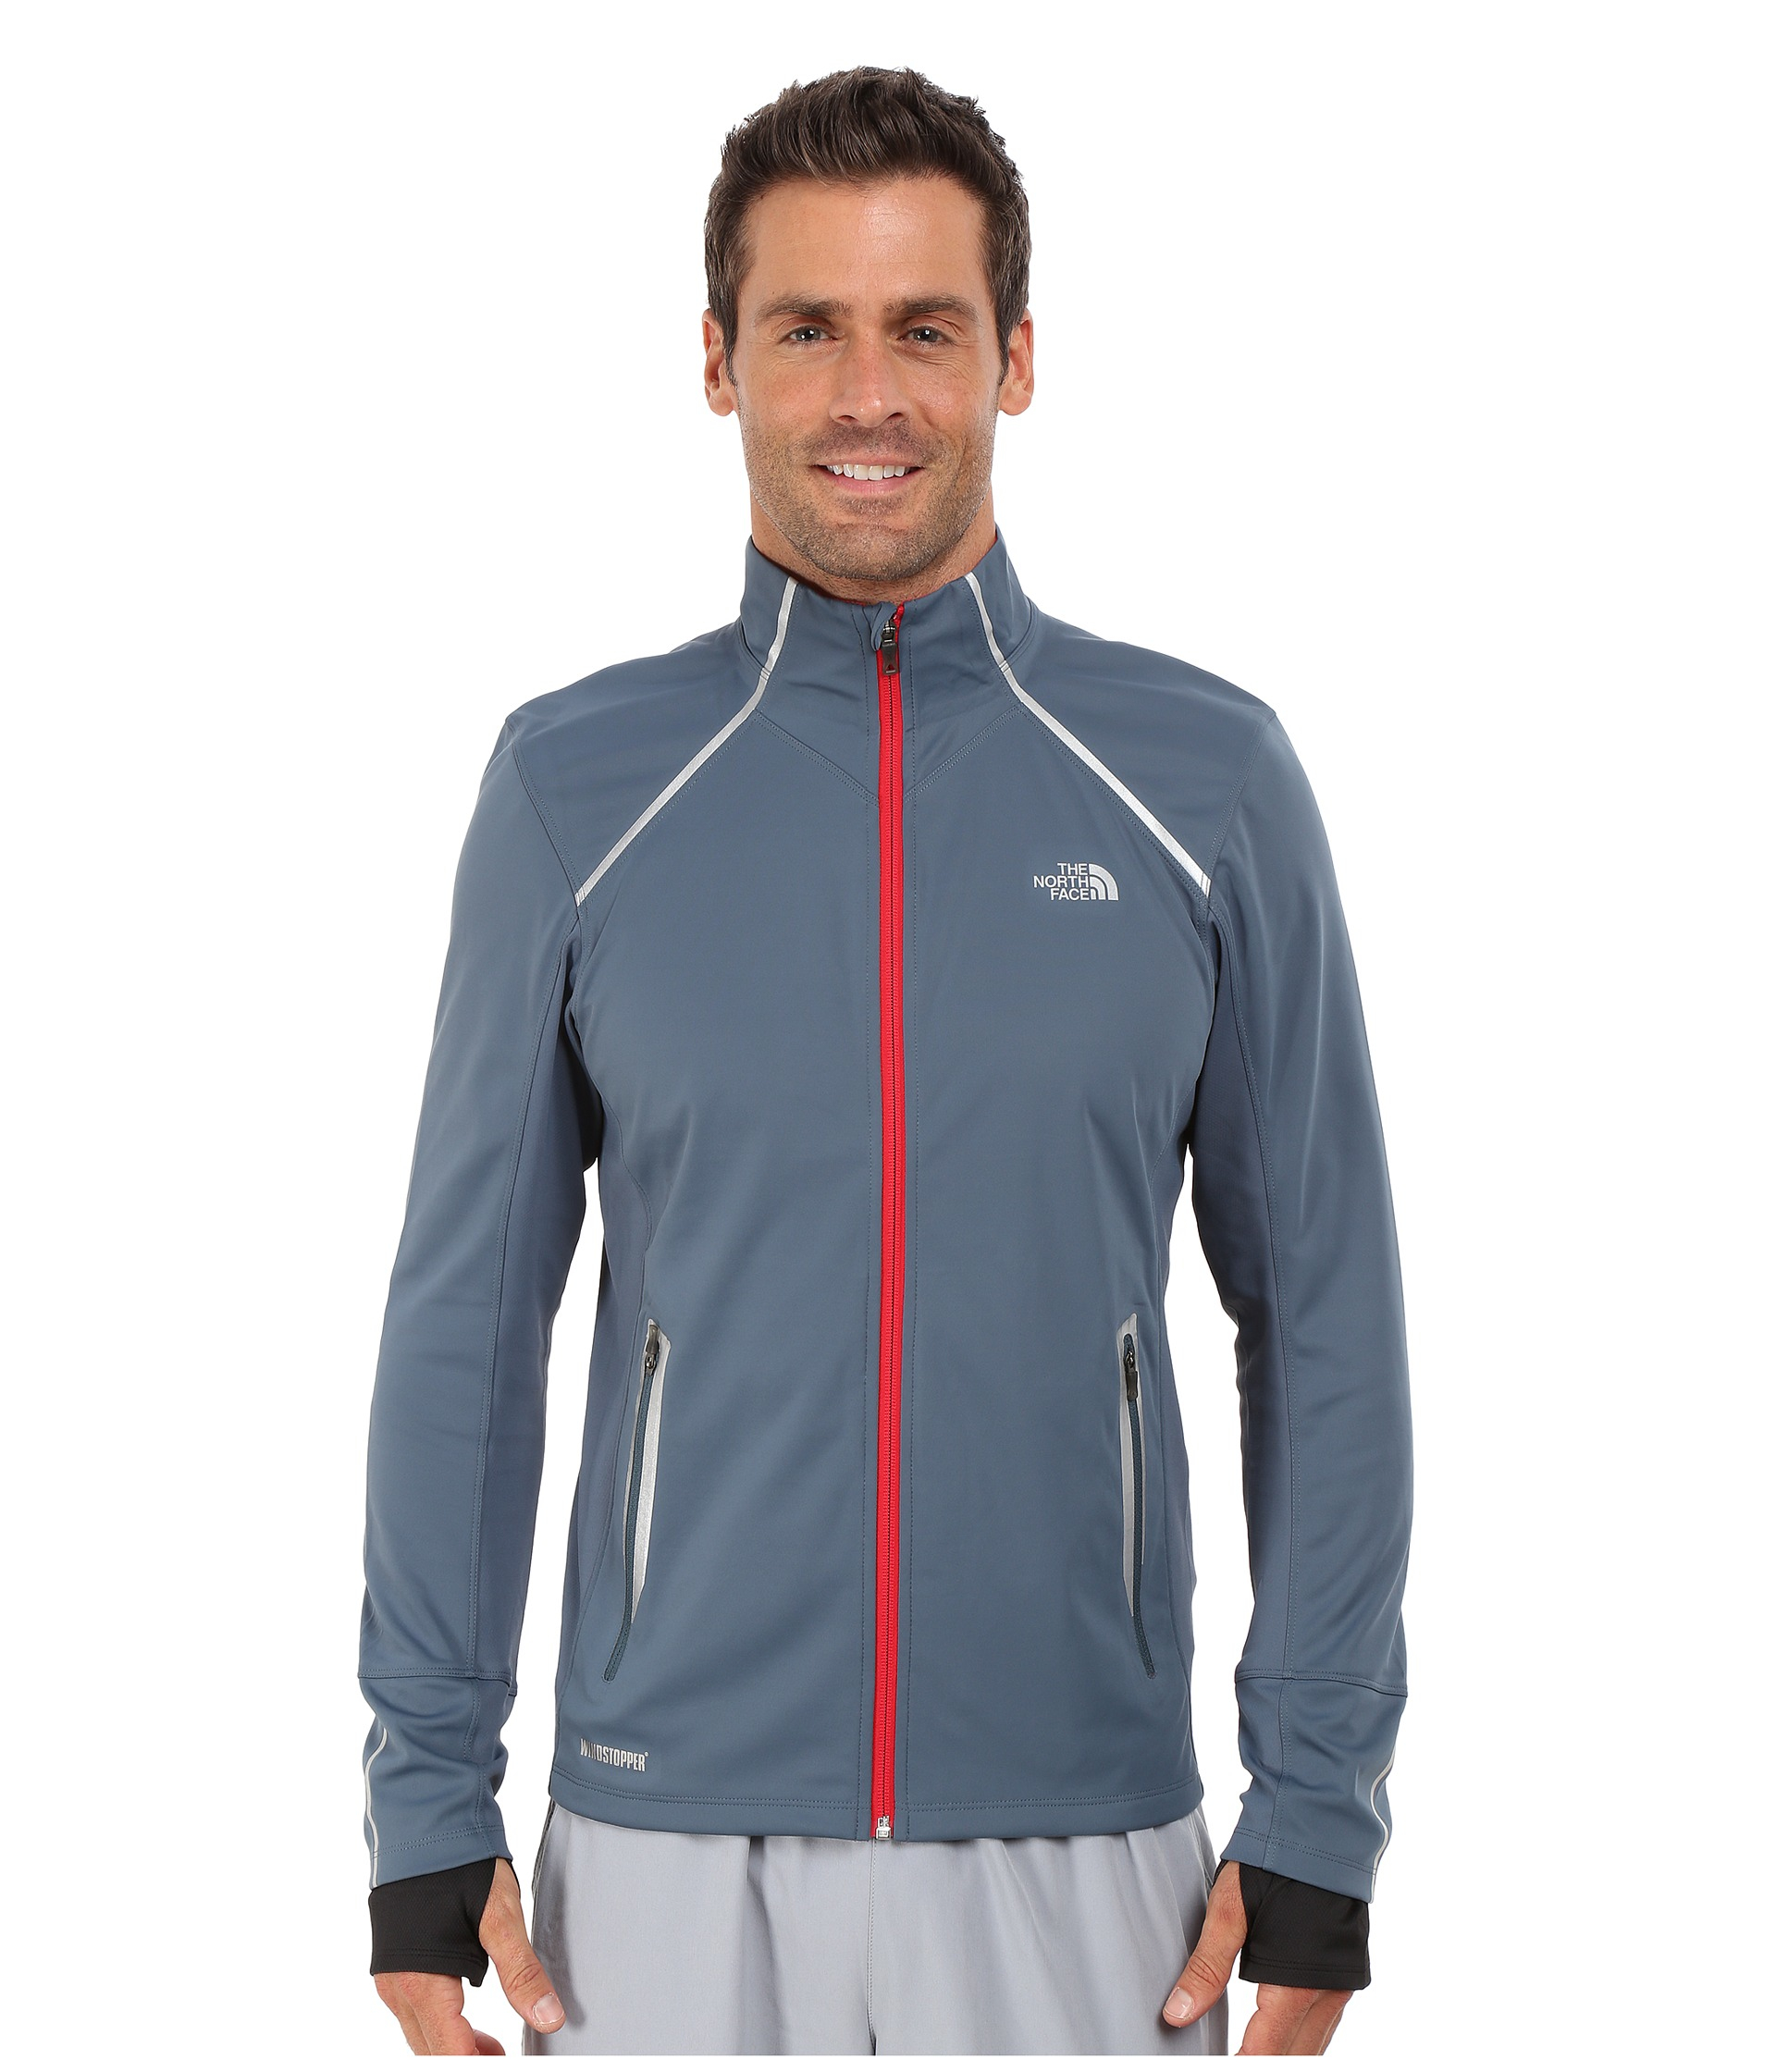 lyst the north face isotherm jacket in blue for men rh lyst com